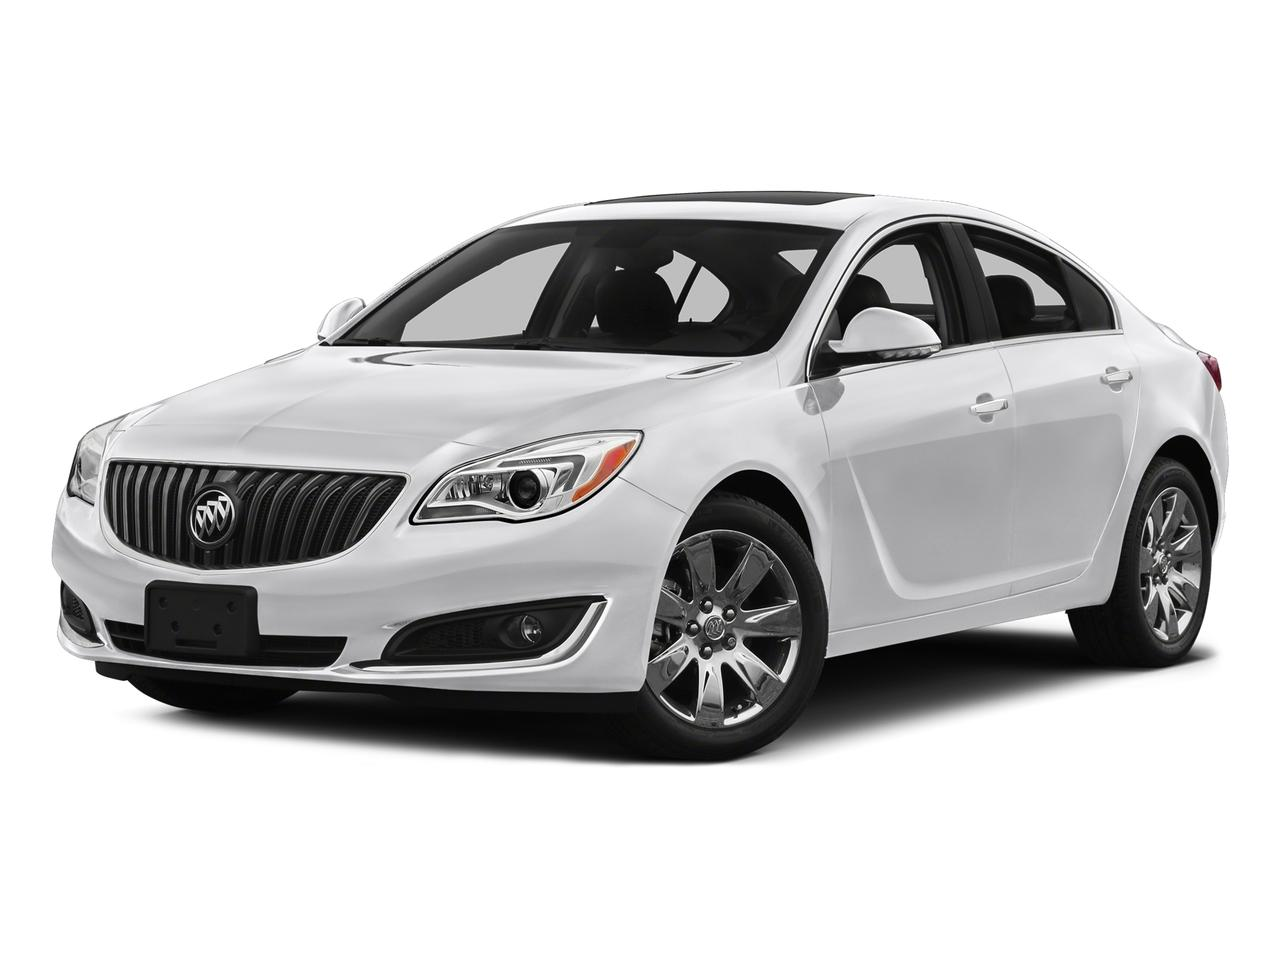 2016 Buick Regal Vehicle Photo in Mount Horeb, WI 53572